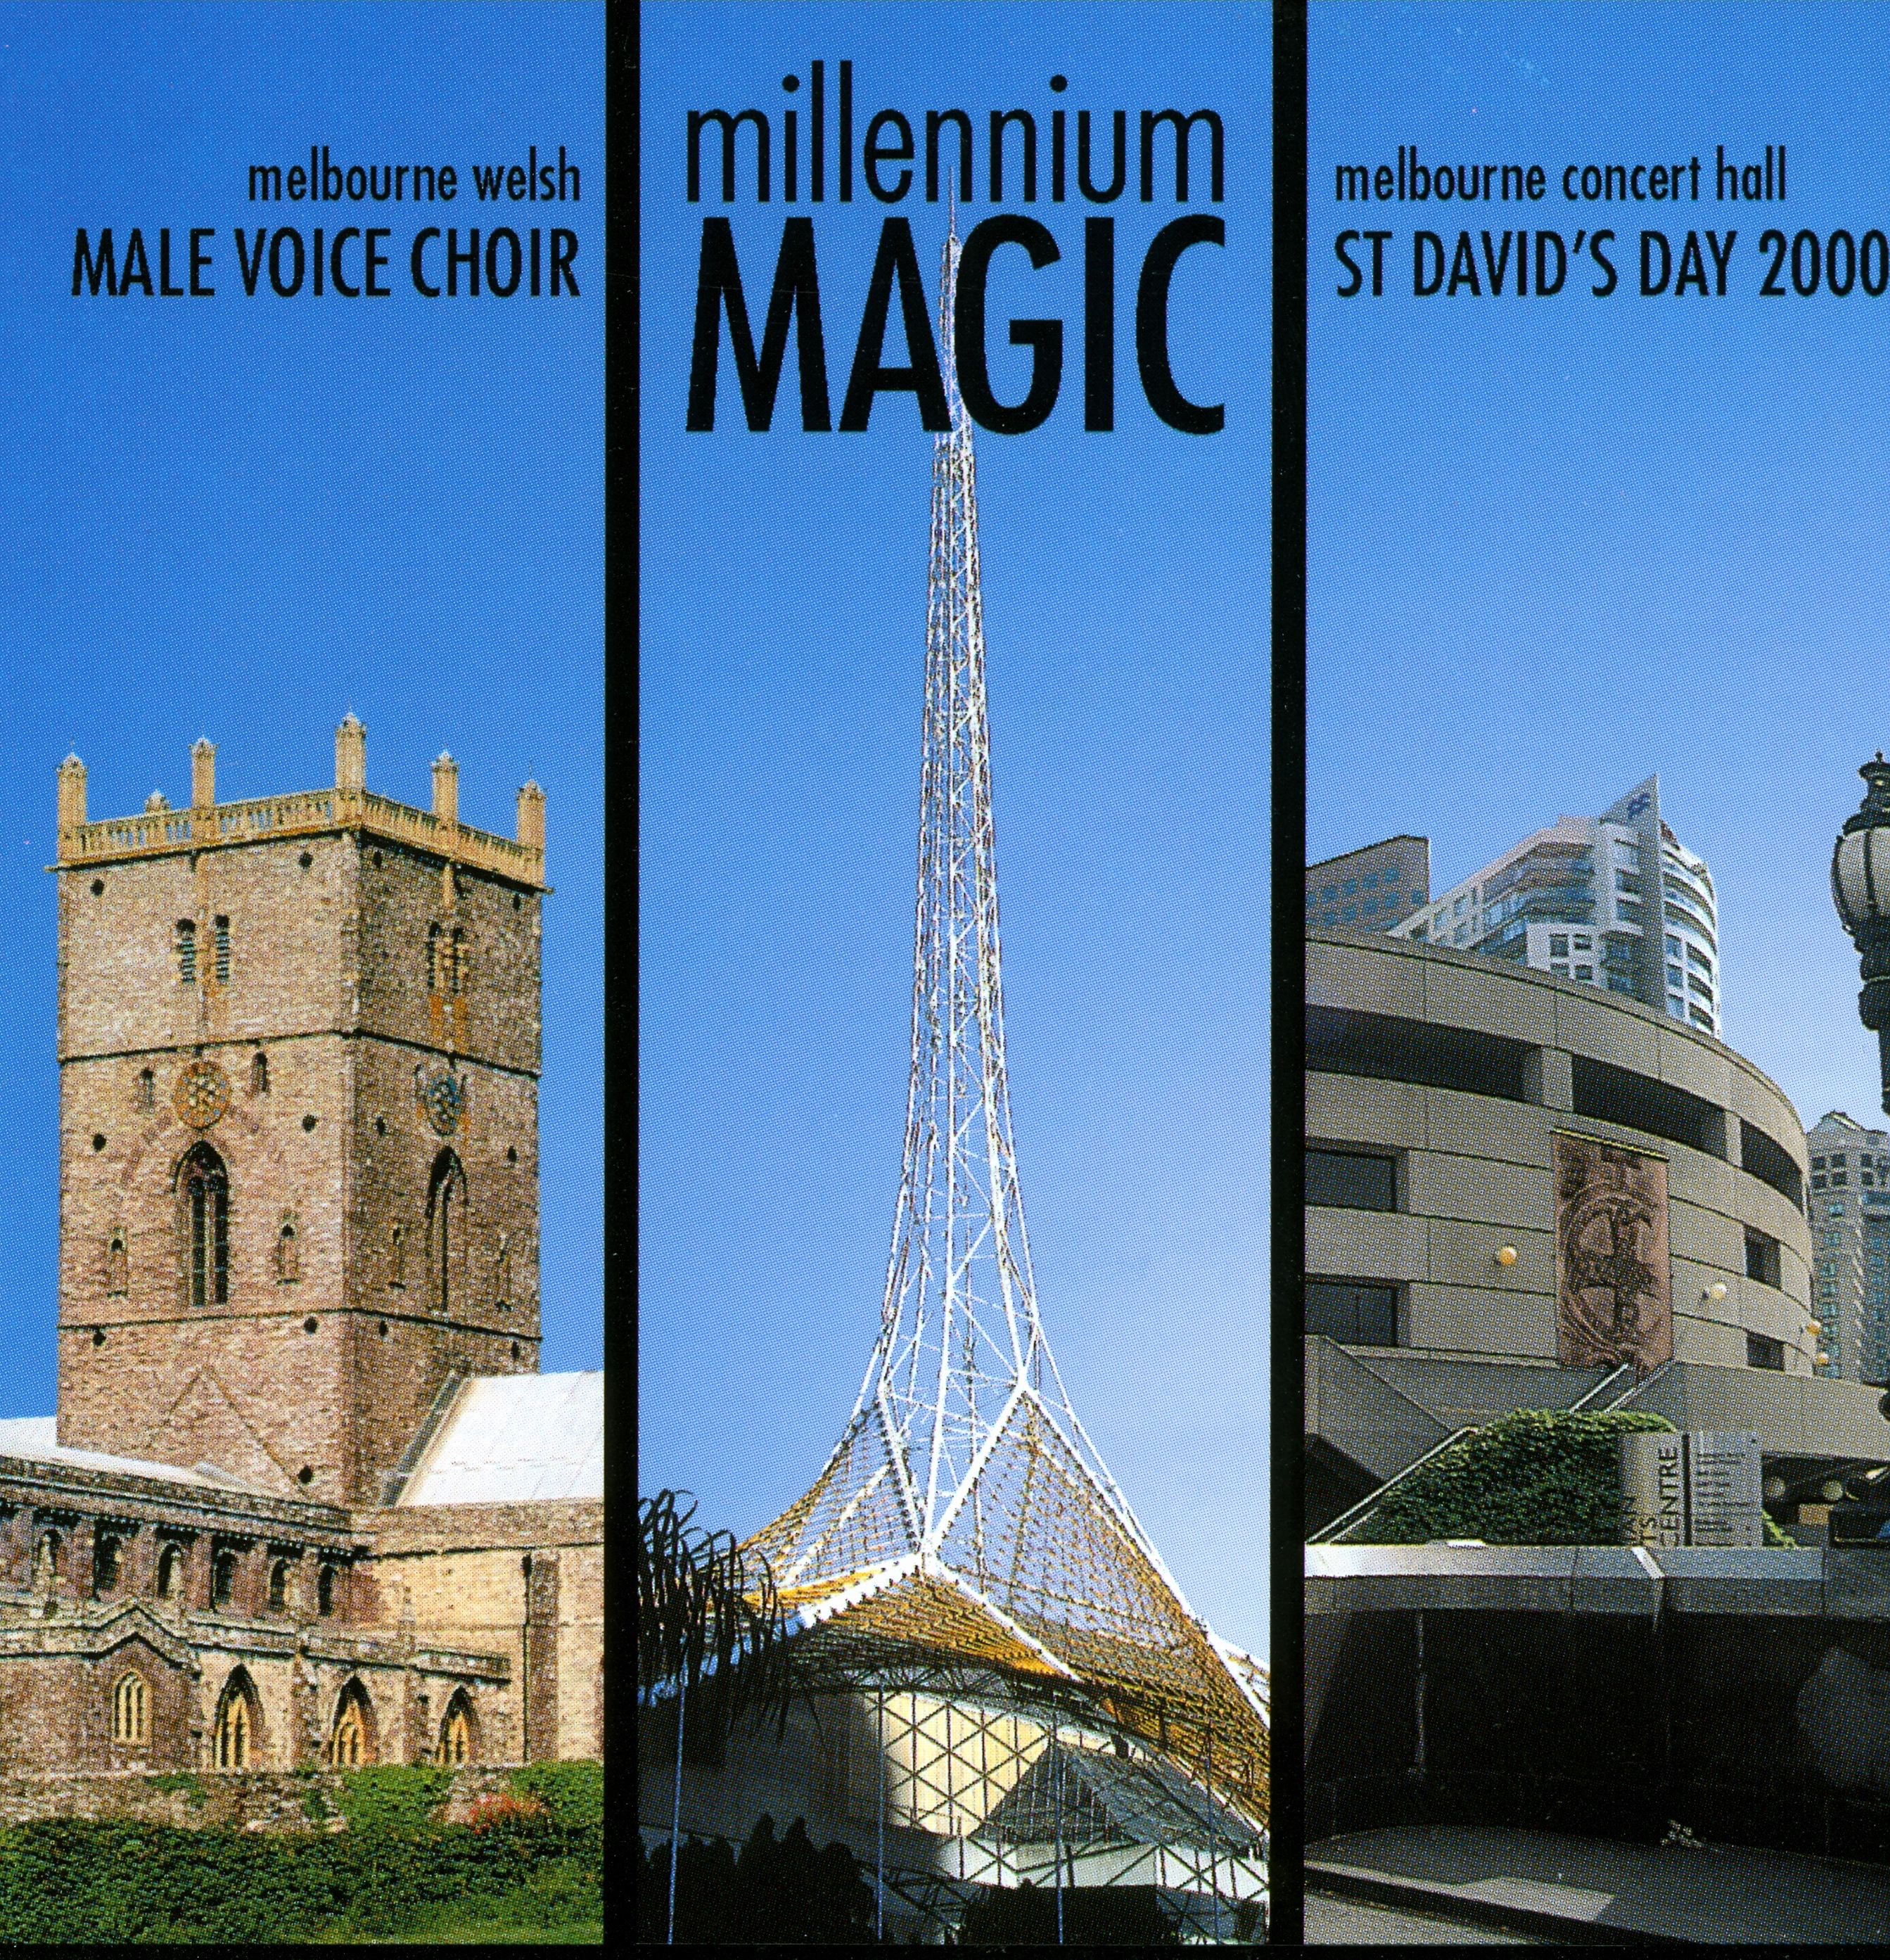 MP3 Songs Online:♫ Shosholoza - Melbourne Welsh Male Voice Choir album Millenium Magic. Vocal,Music,Classical,Choral listen to music online free without downloading.